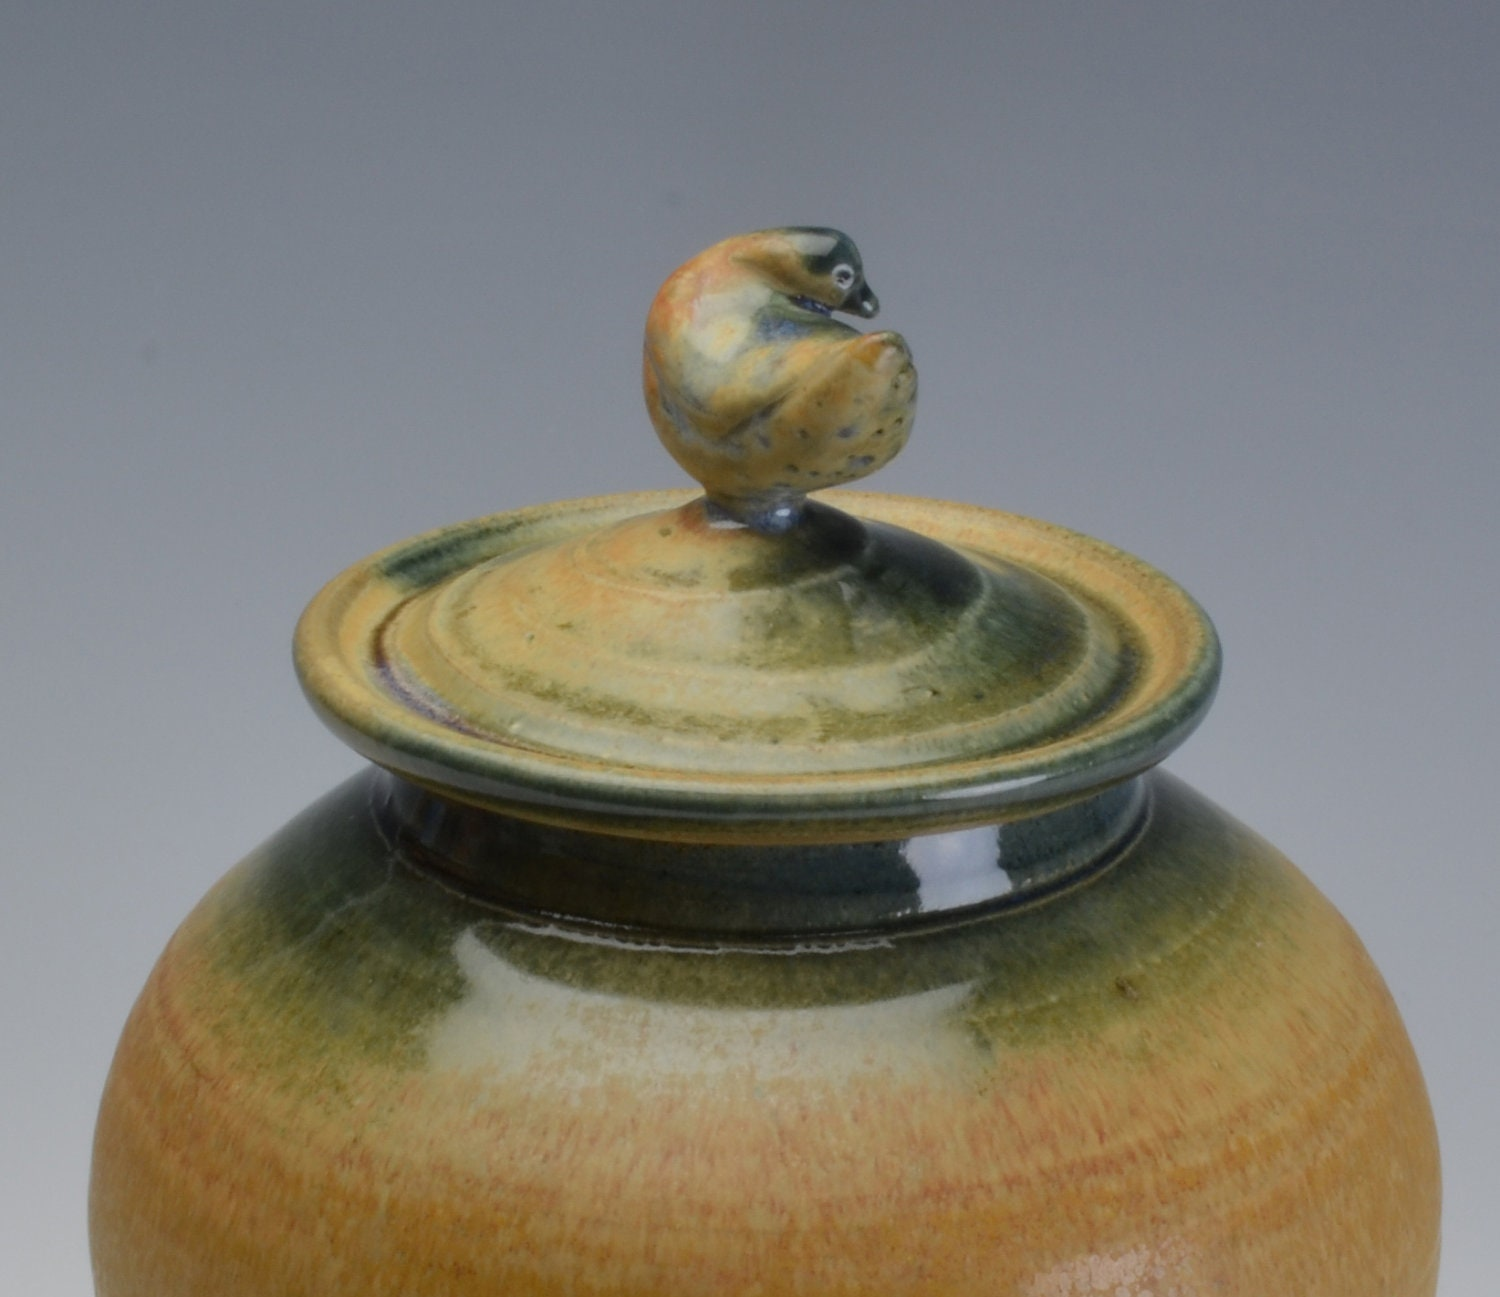 Memorial/Cremation Urn sculpted Bird with earthy ochre and blue green glazes